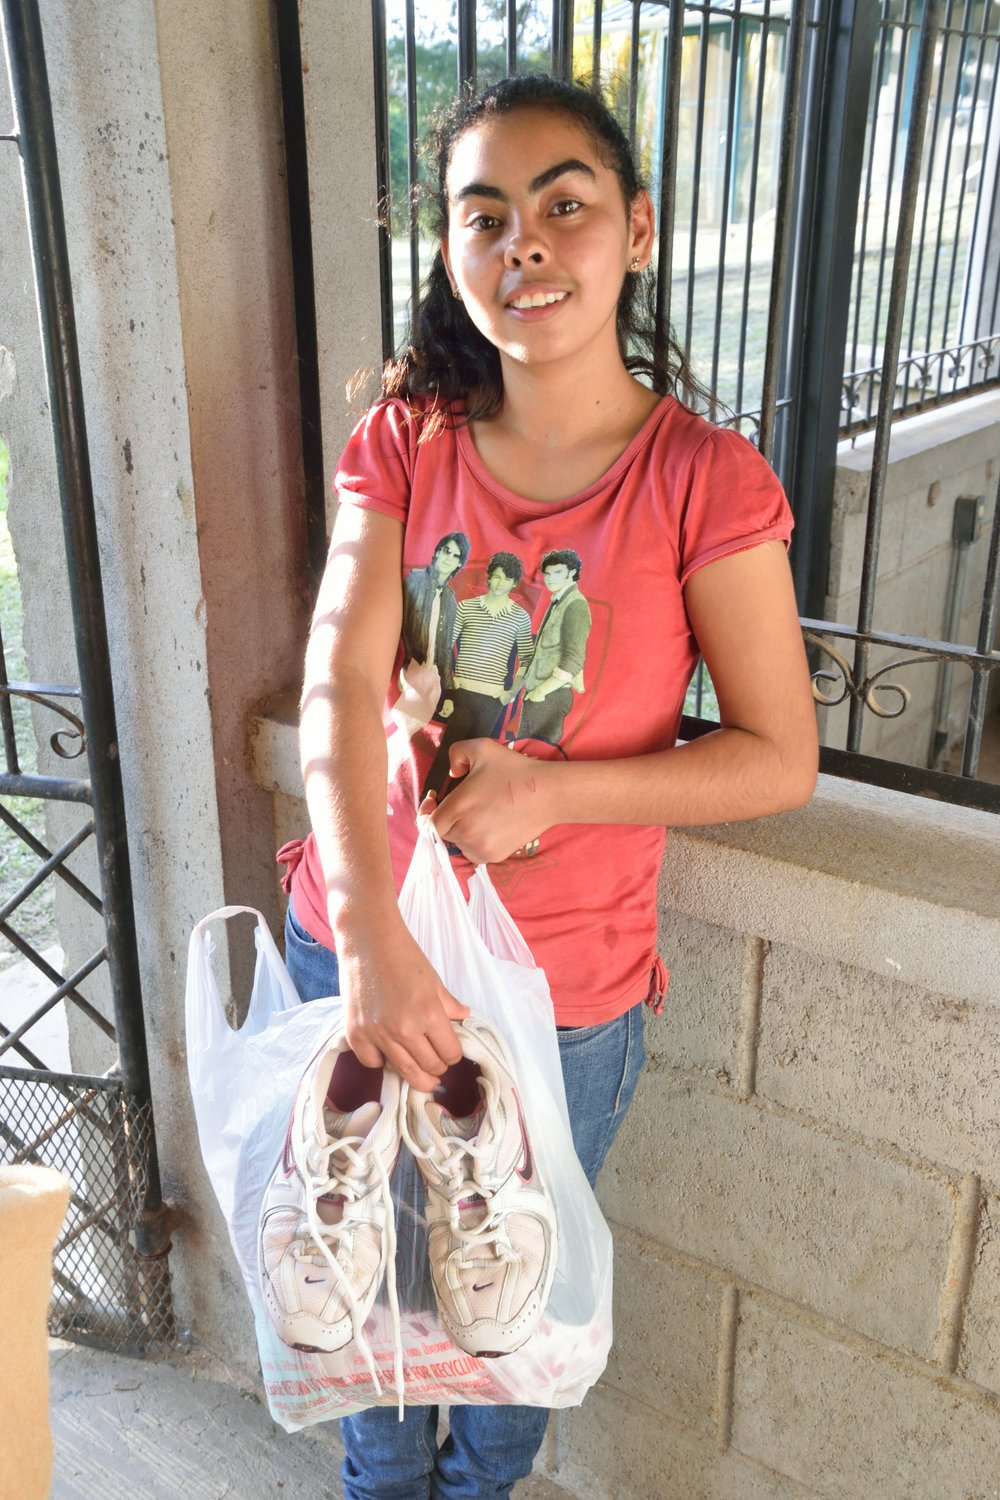 One of our teenage girls walks away with a bag of new clothes and even tennis shoes for gym class.